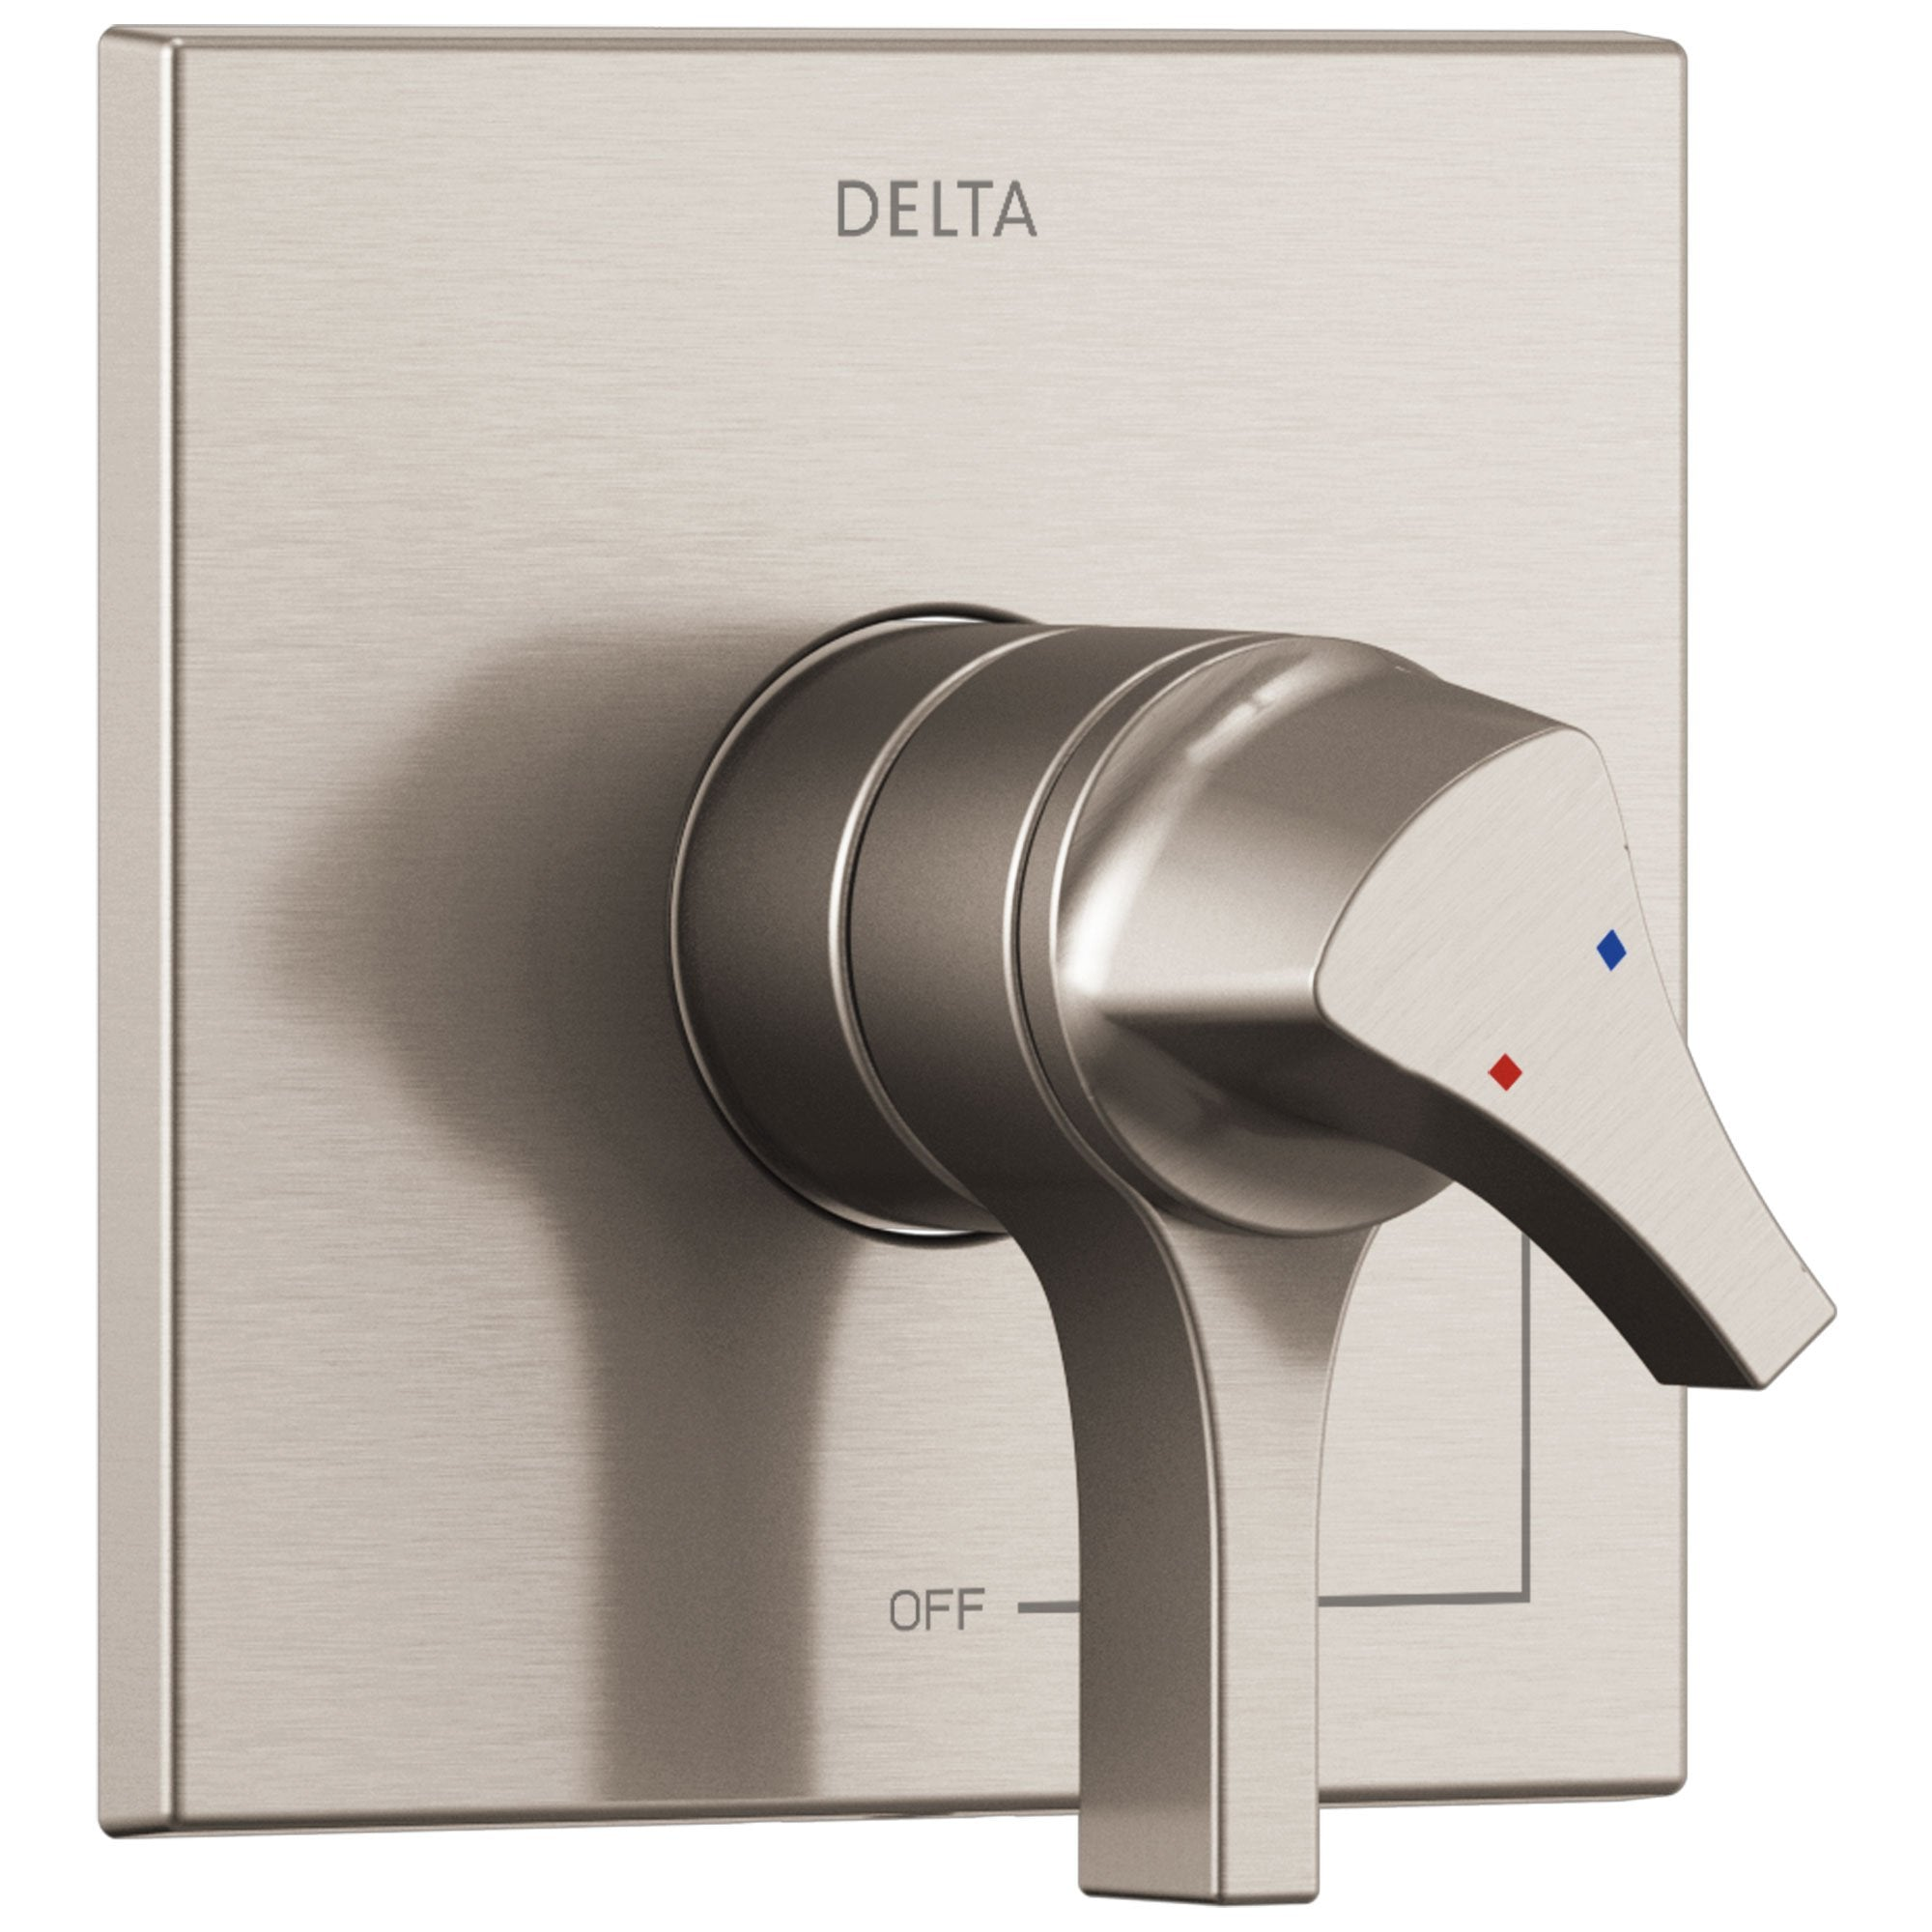 Delta Zura Stainless Steel Finish Monitor 17 Dual Temperature and Water Pressure Shower Faucet Control Handle Includes Trim Kit and Valve with Stops D1973V